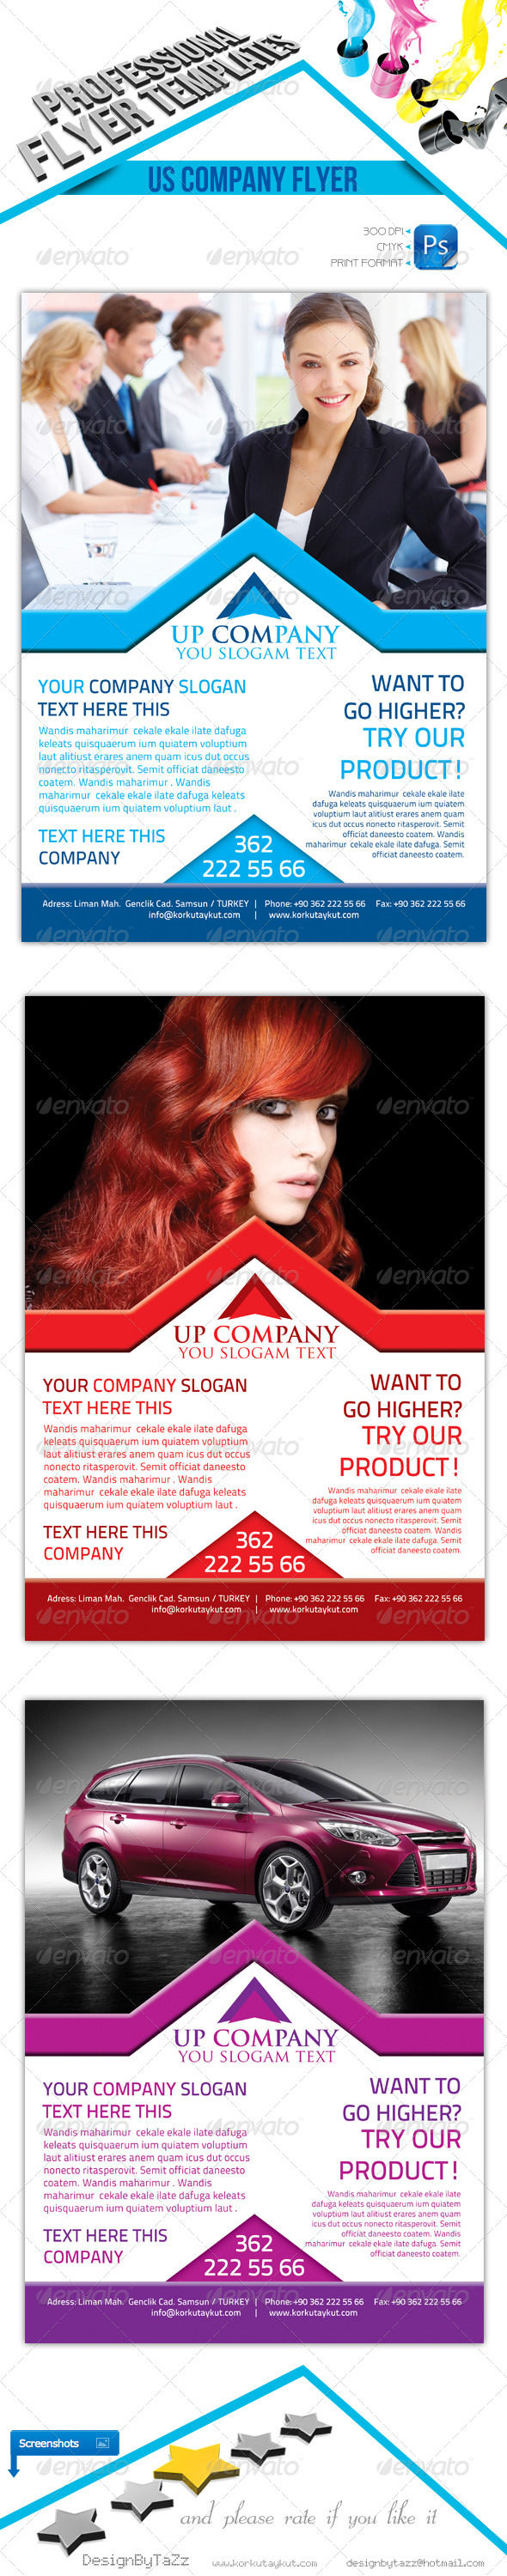 Us Company Flyer Template - Corporate Flyers